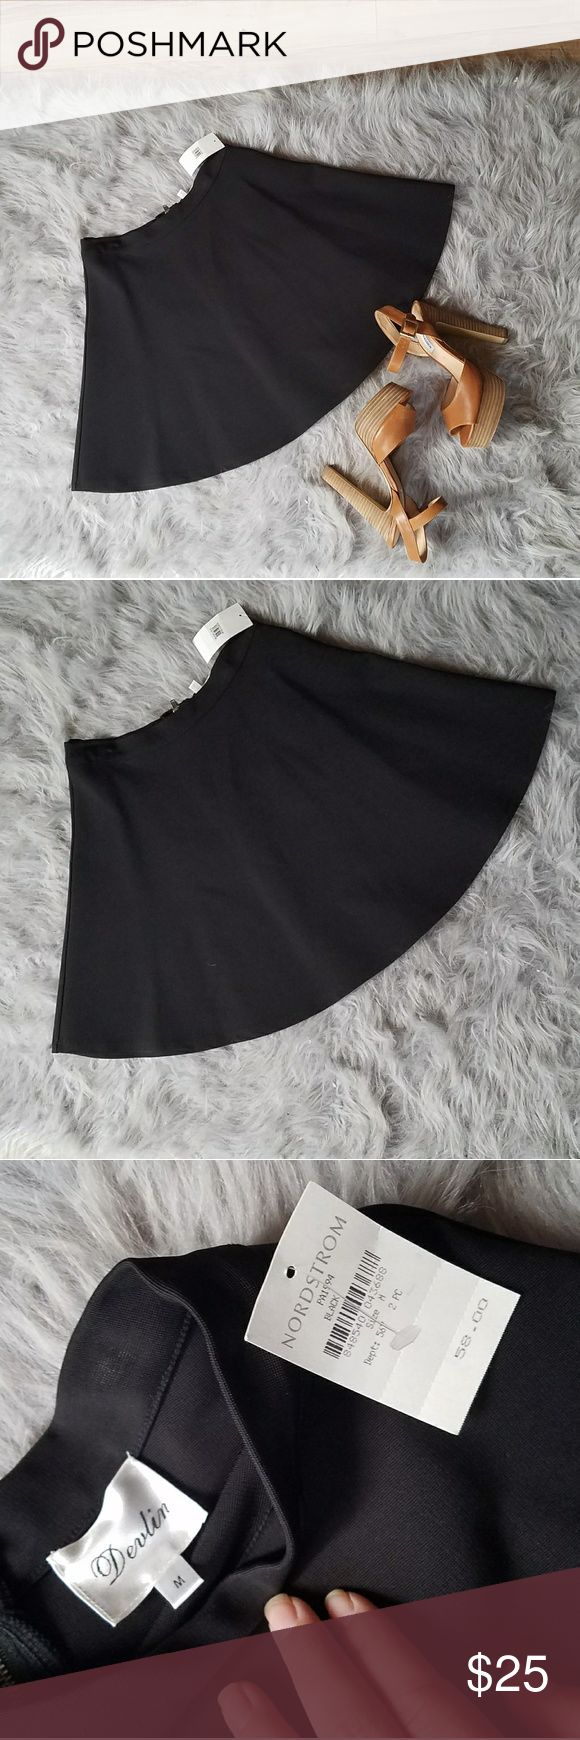 NWT Devlin Black Circle Skirt size Medium Brand new never worn black circle skirt by Devlin from Nordstrom. Has a zipper up back. Nordstrom Skirts Circle & Skater